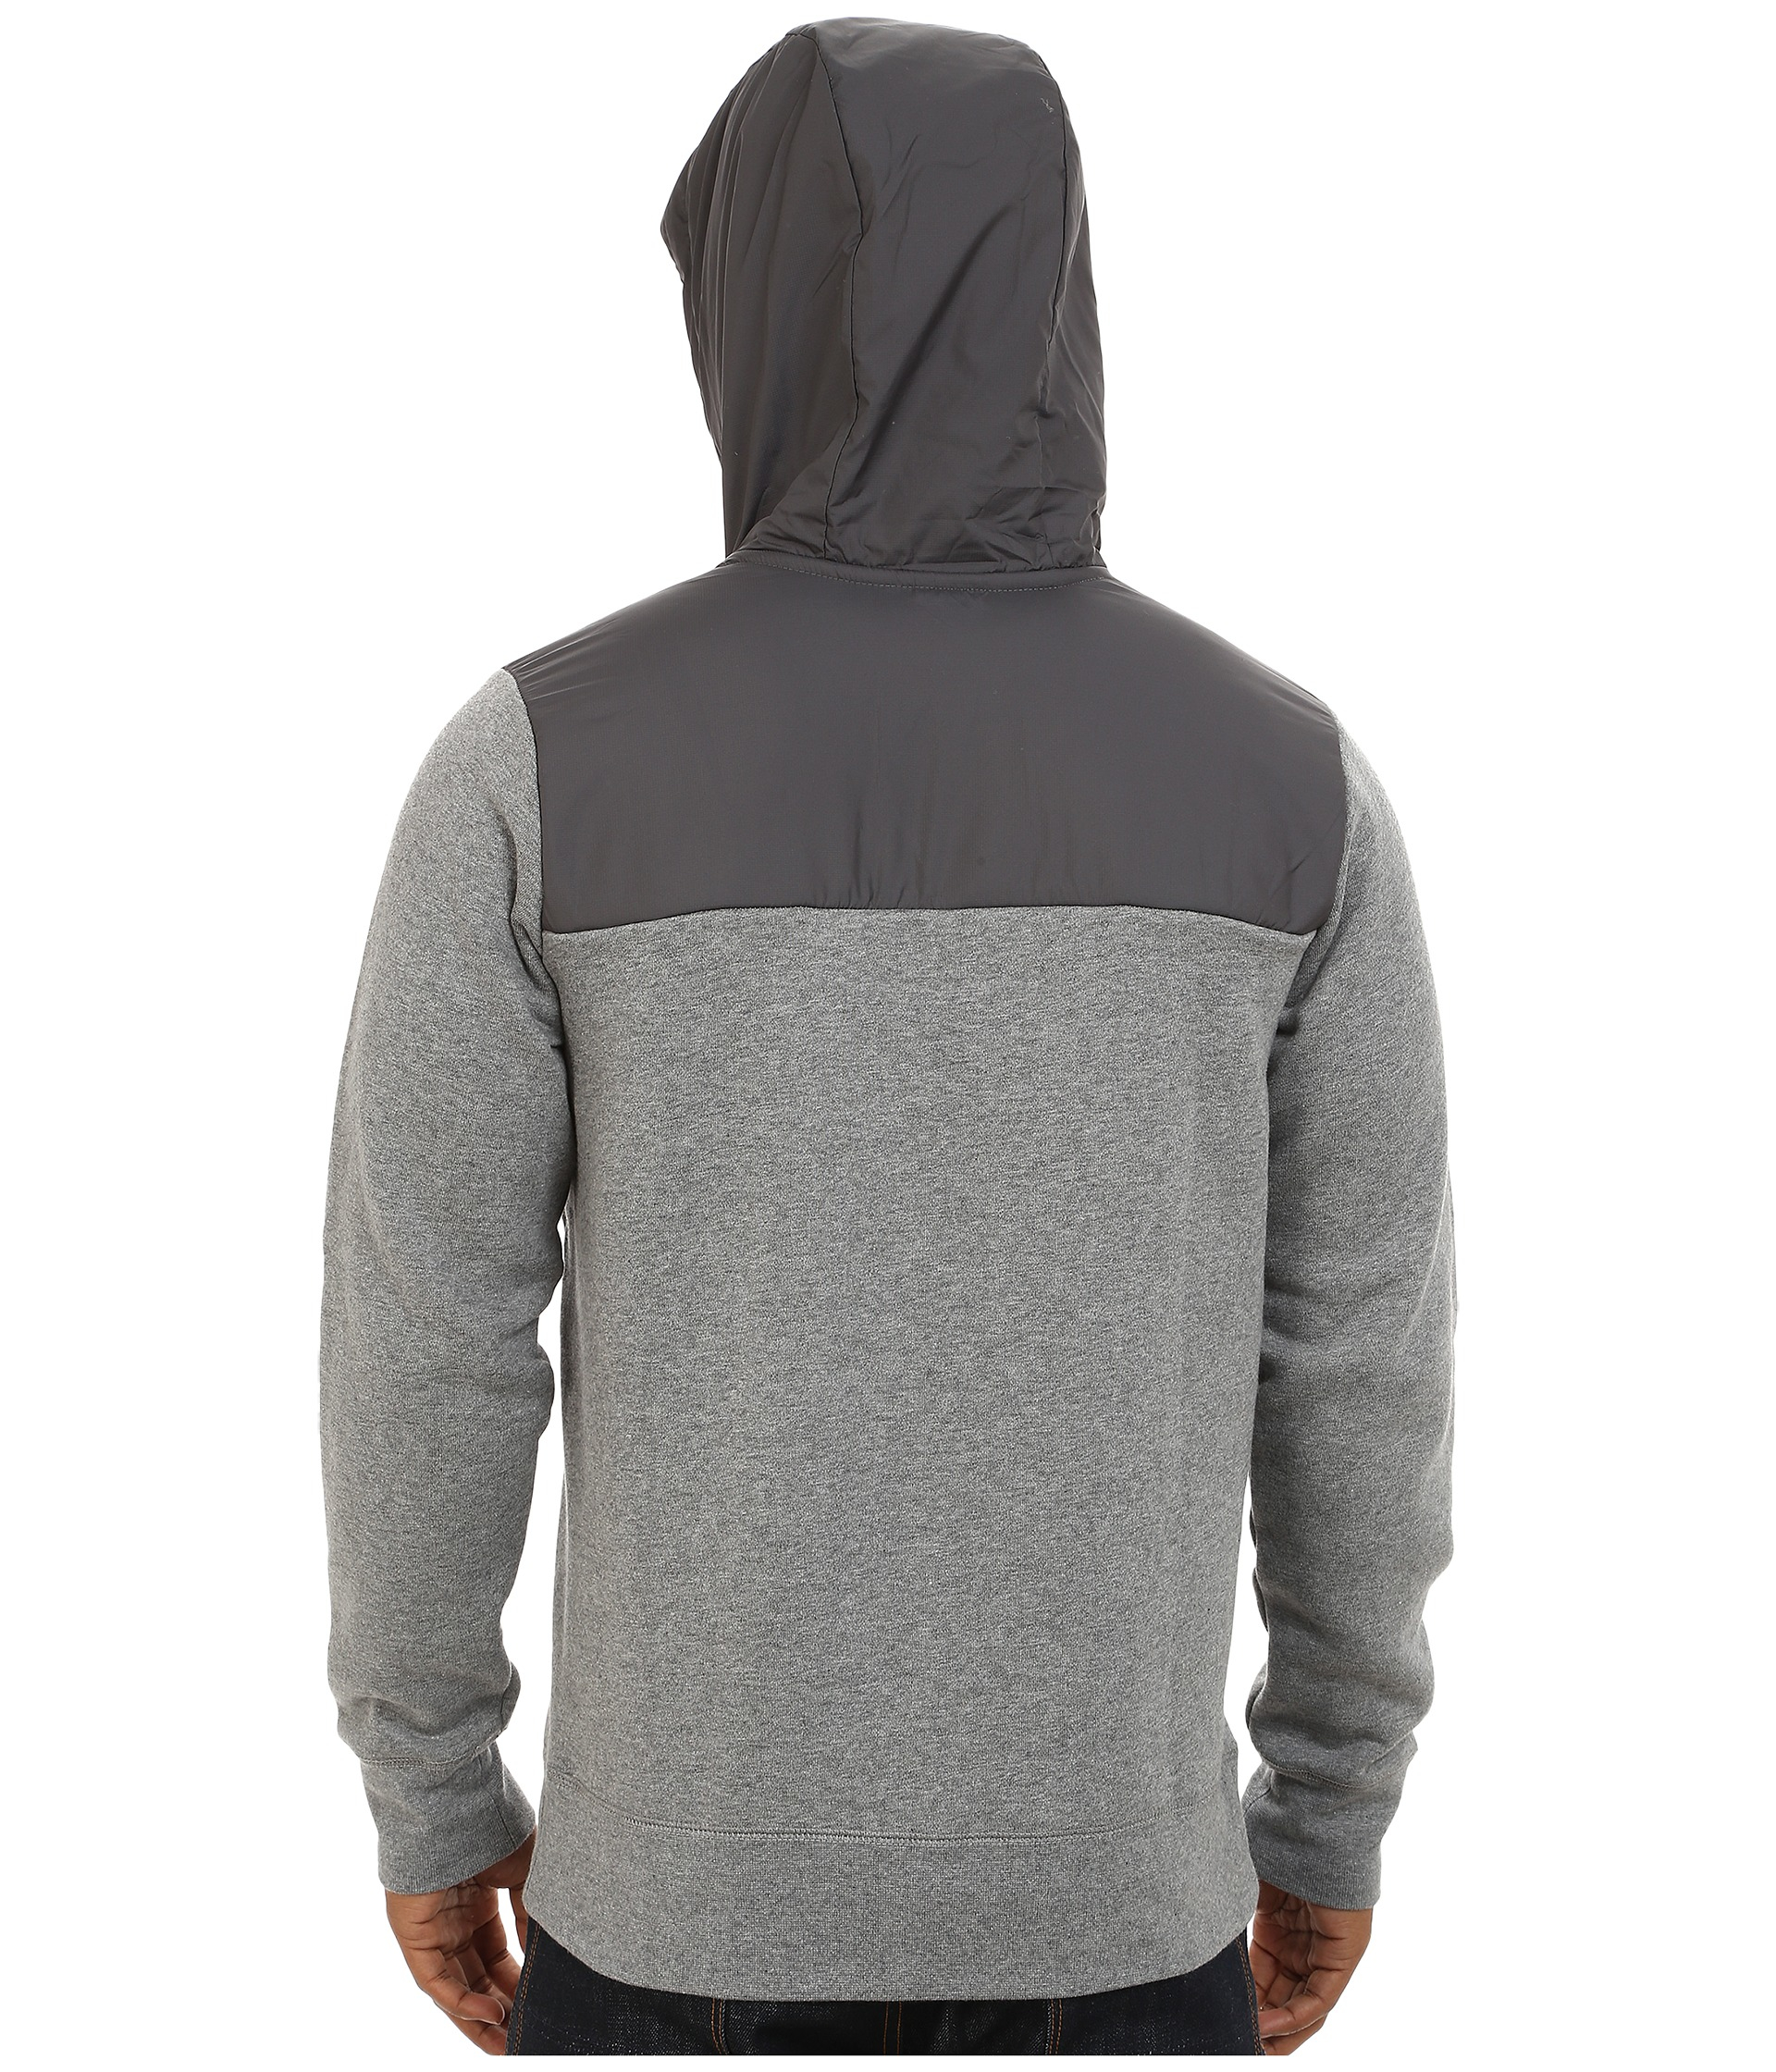 Nike Aw77 Fleece Hoodie Fabric Mix in Black for Men ...